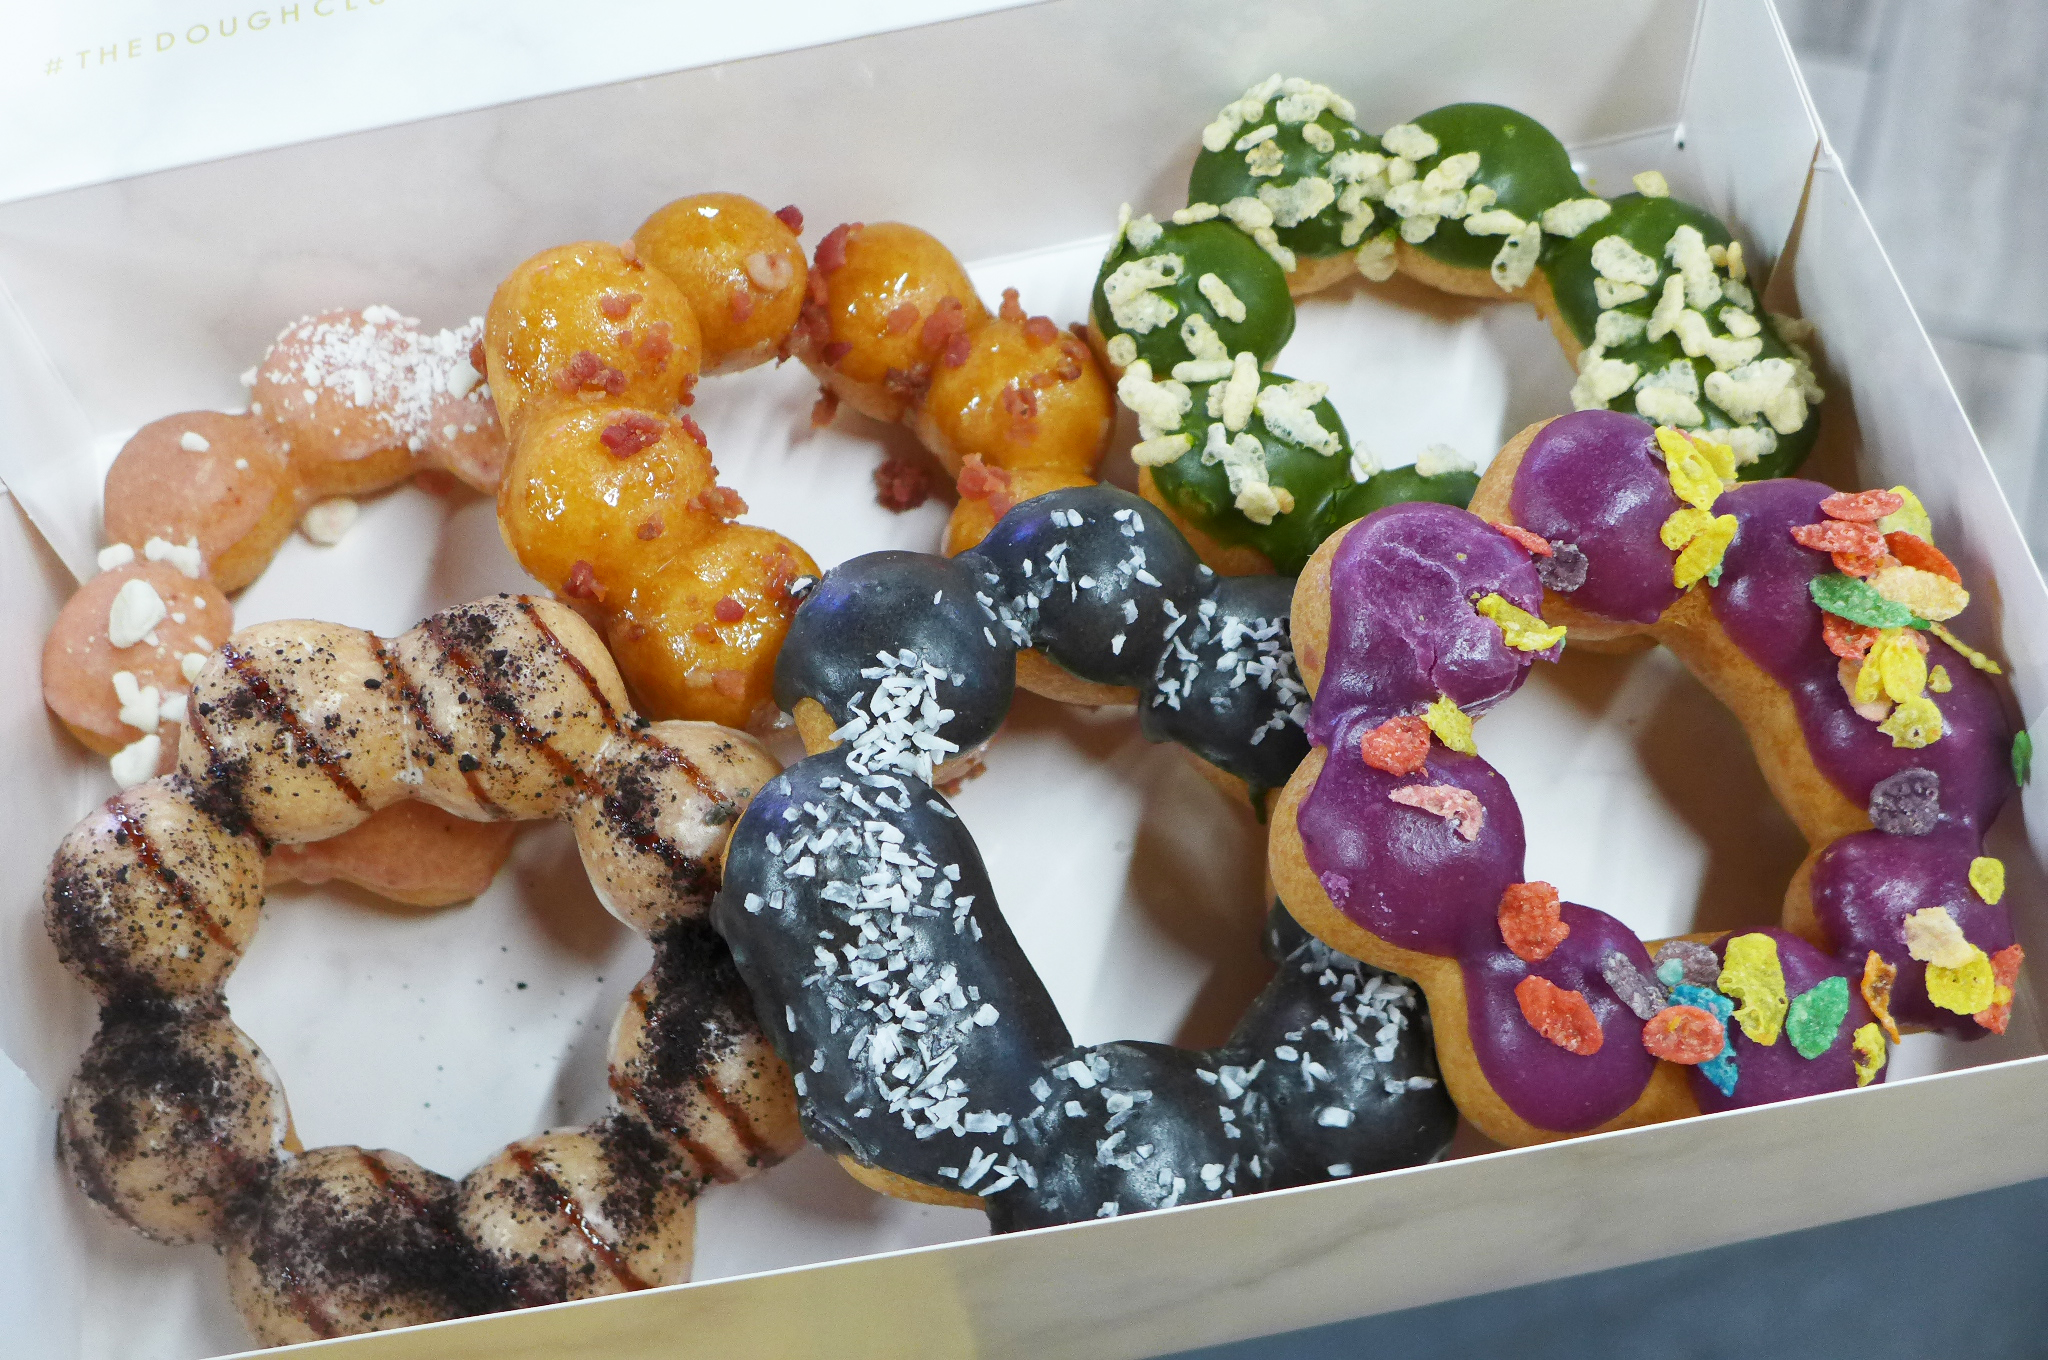 Since doughnuts made of conjoined balls in a box in a variety of garish colors.